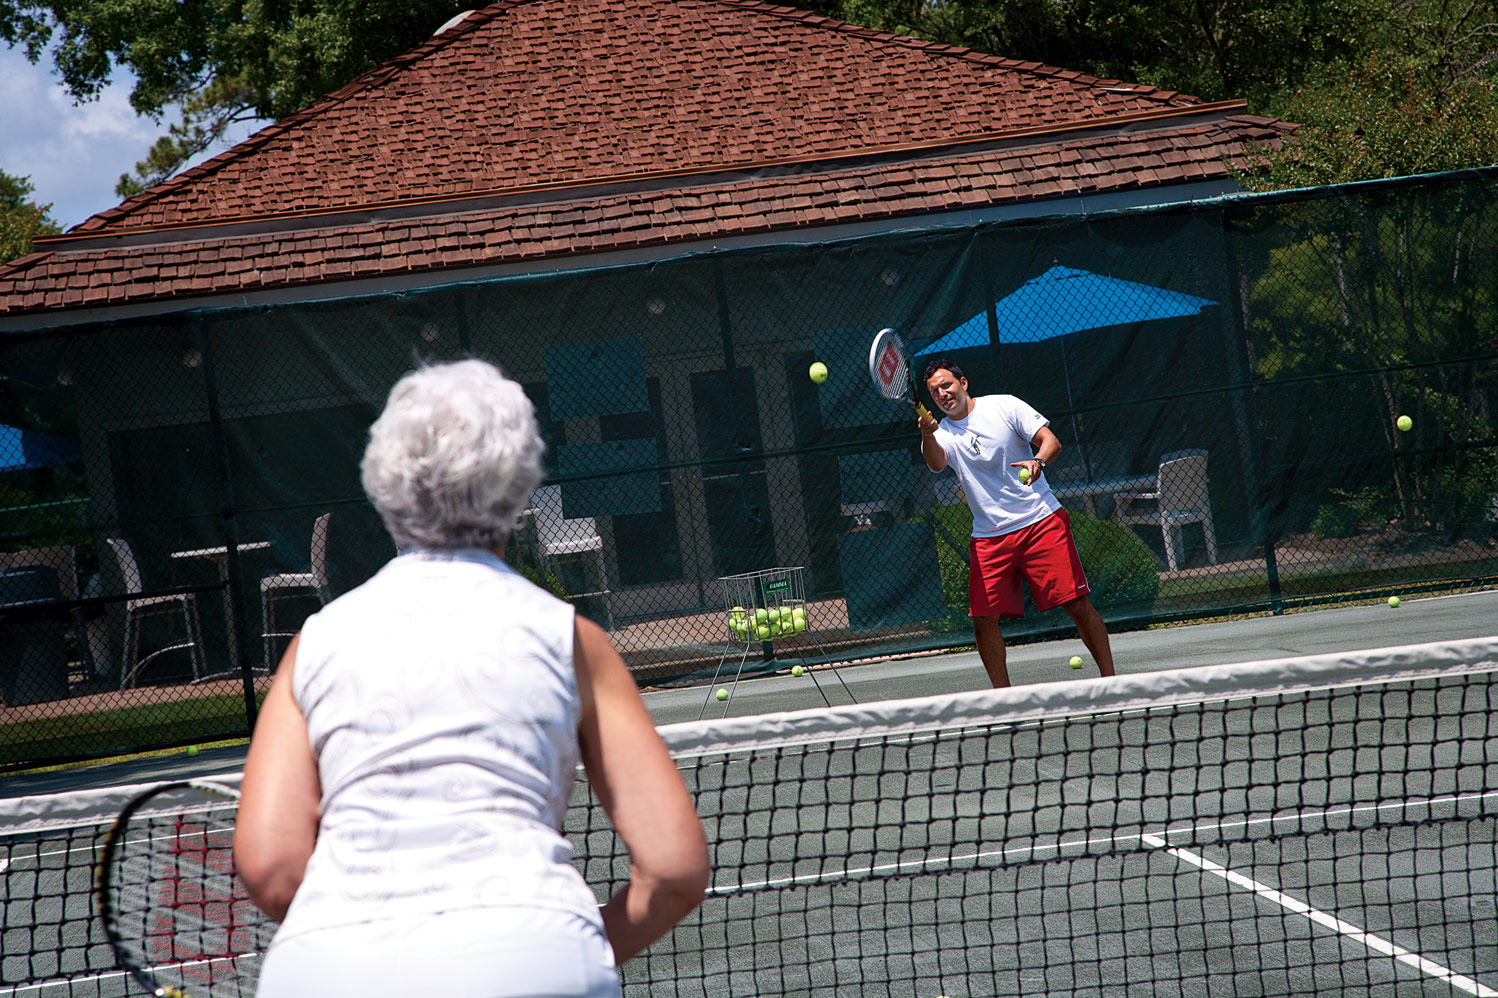 Get in a game of tennis at the Ocean Creek Tennis Center.